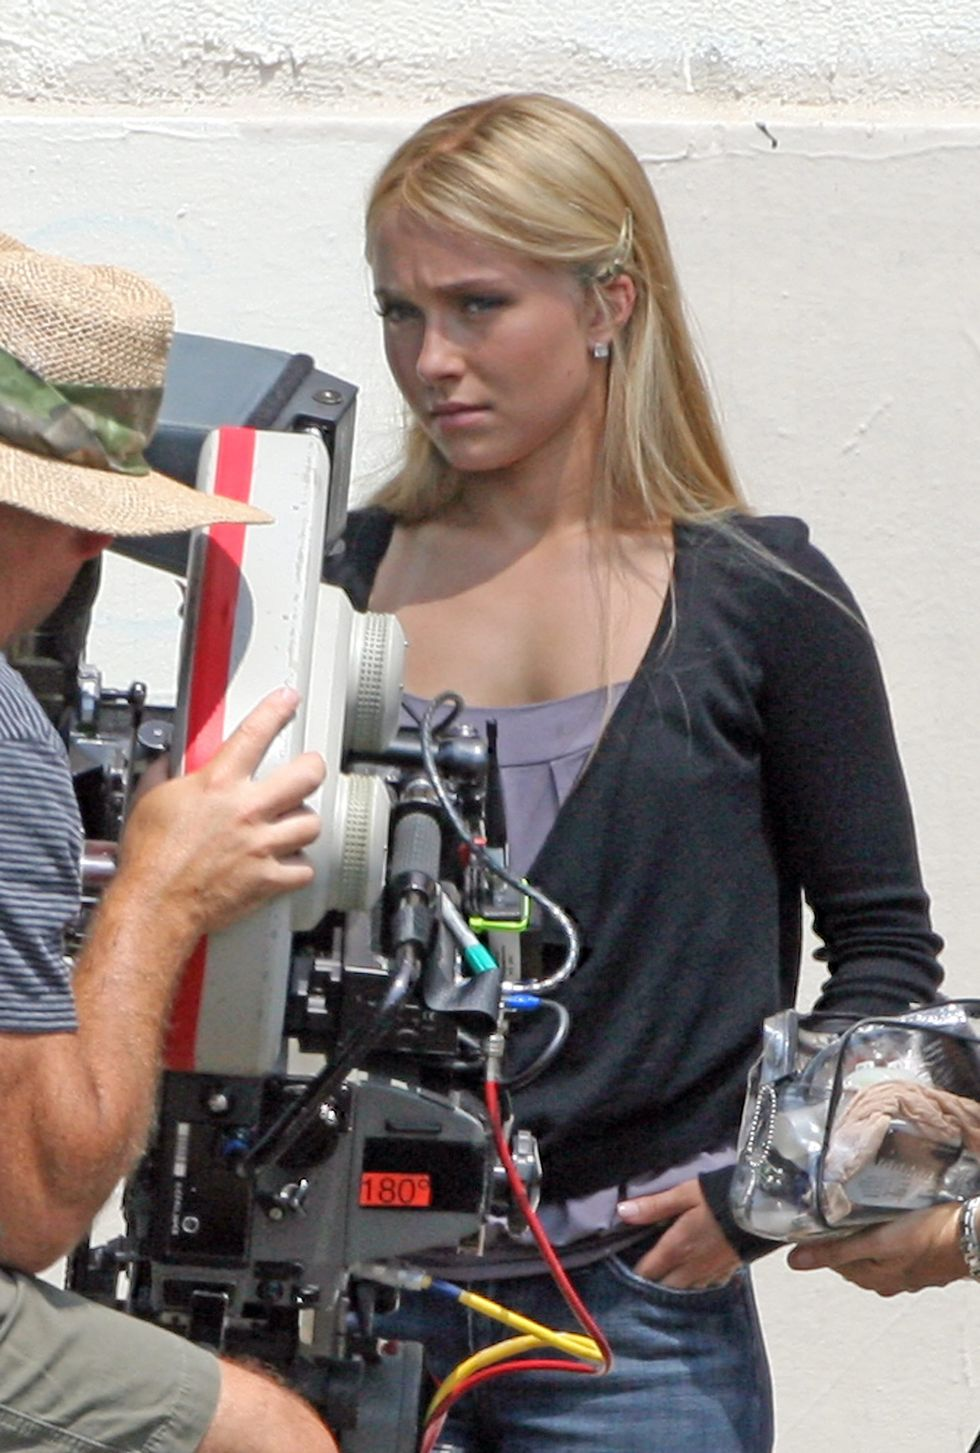 hayden-panettiere-on-the-set-of-heroes-in-los-angeles-2-01